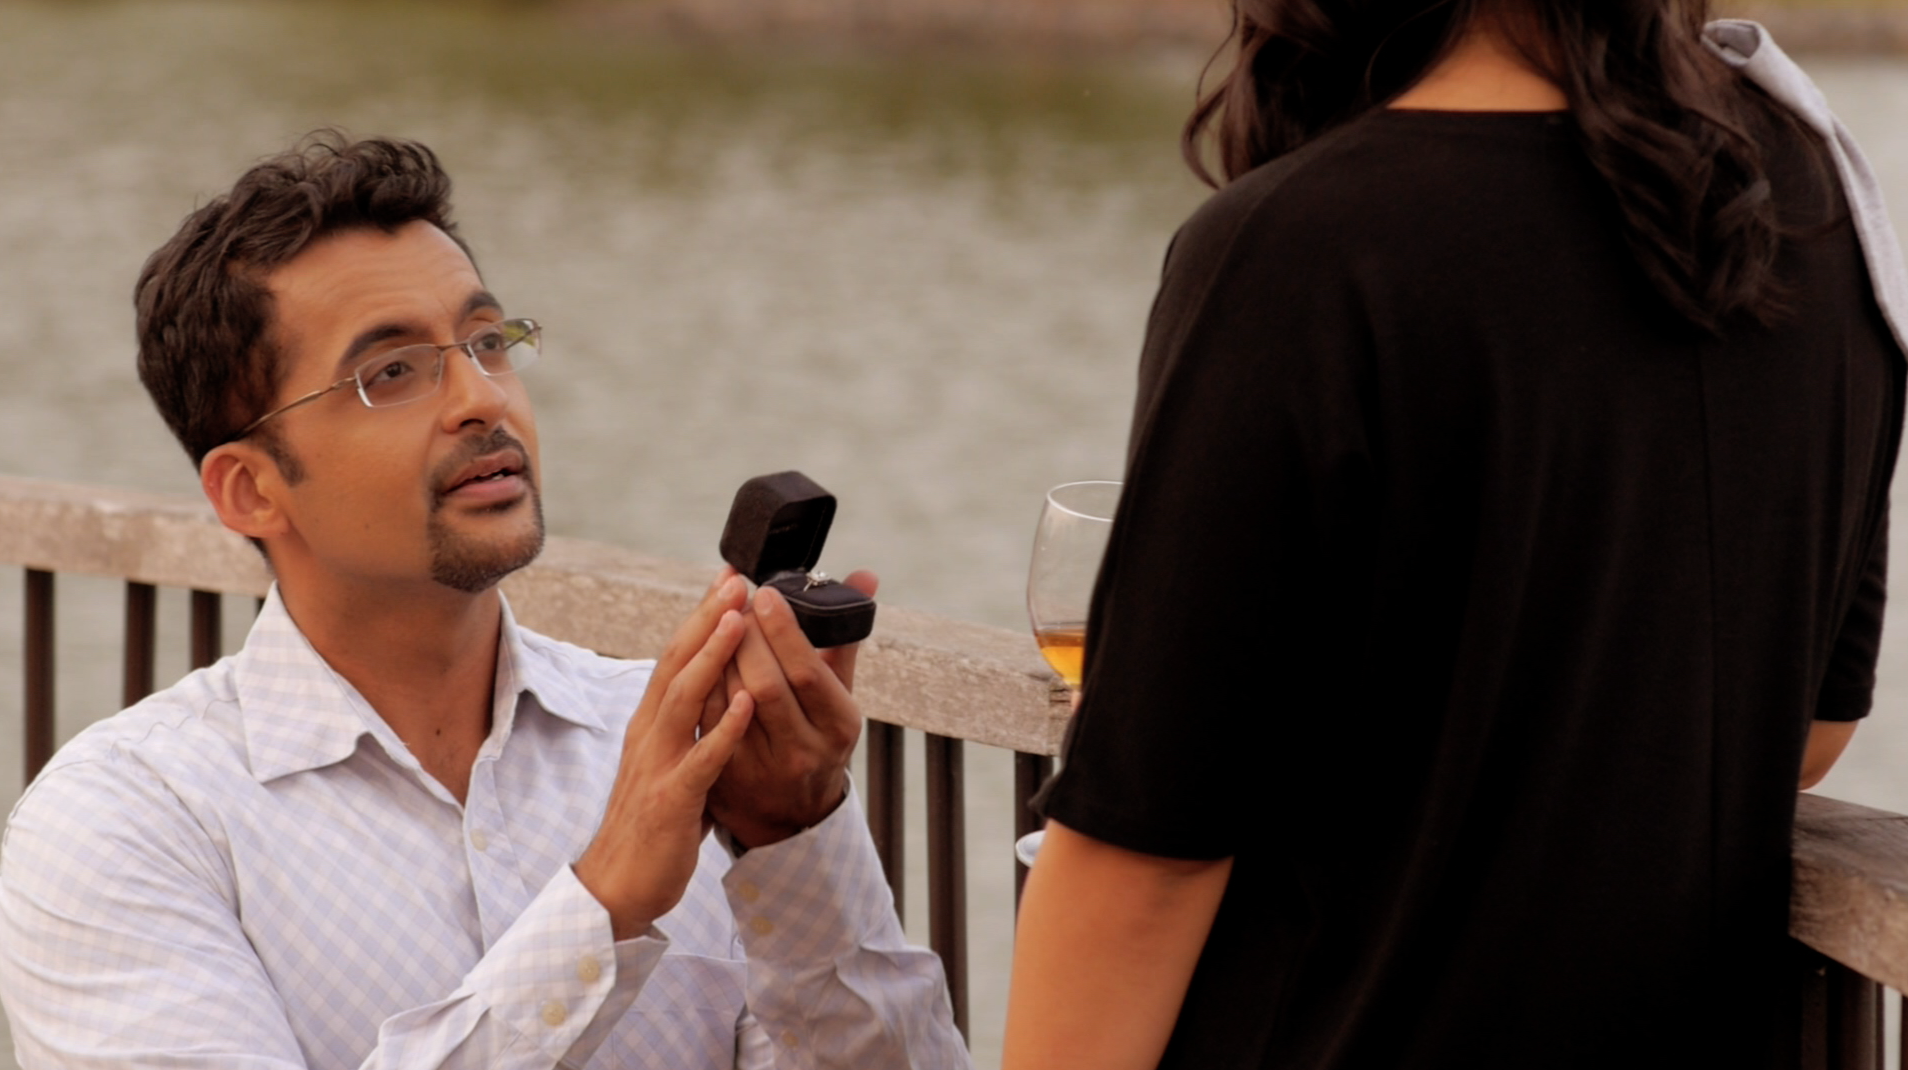 Pavan J Singh as Charles in What Do Men Want?